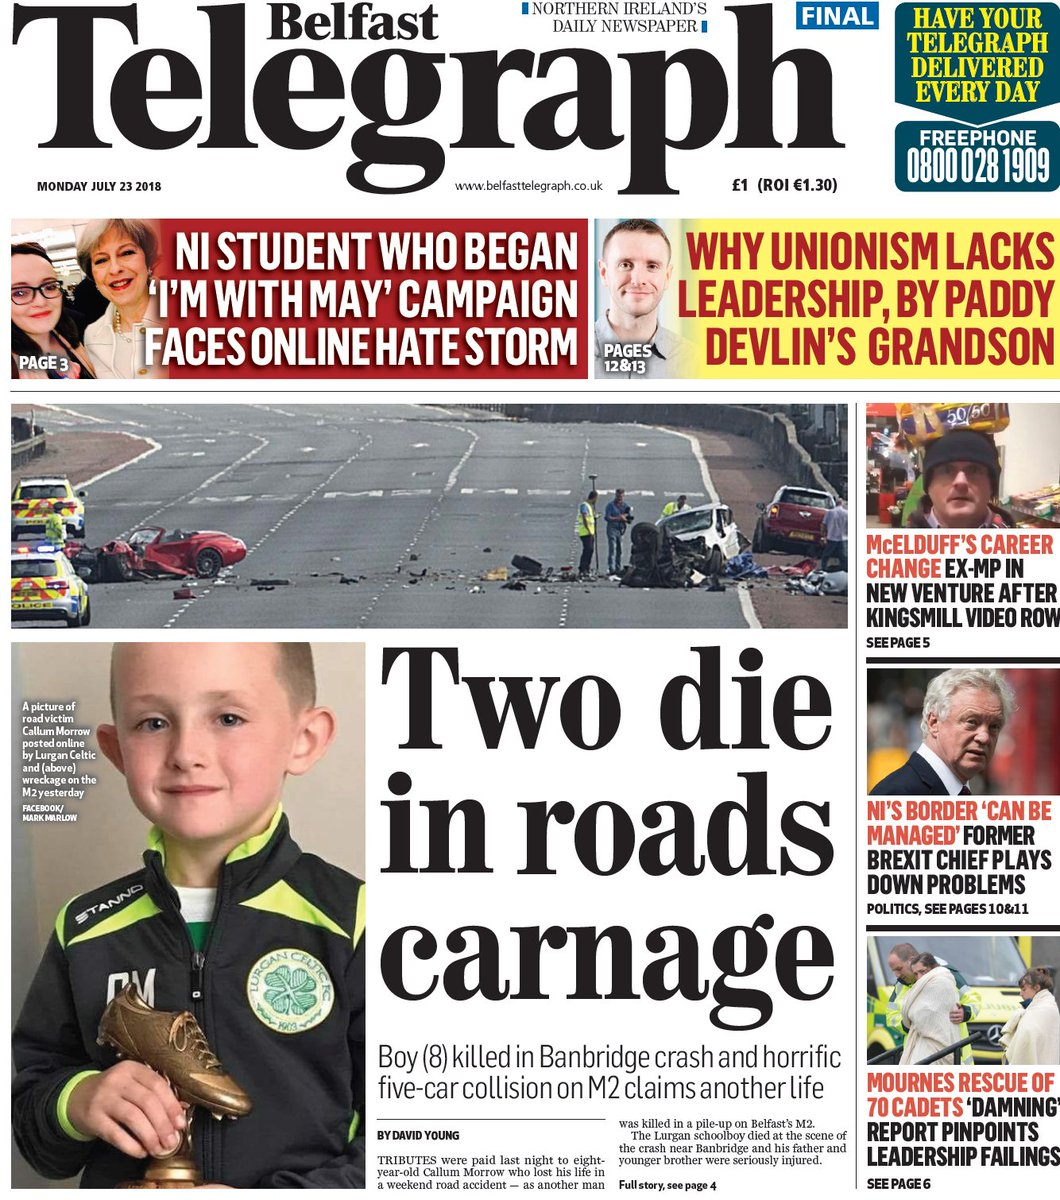 c17d7c2b4feb7 Stay with @beltel for all your breaking news. Here's a look at the front  page of the Belfast Telegraph this morning  https://www.belfasttelegraph.co.uk/ ...